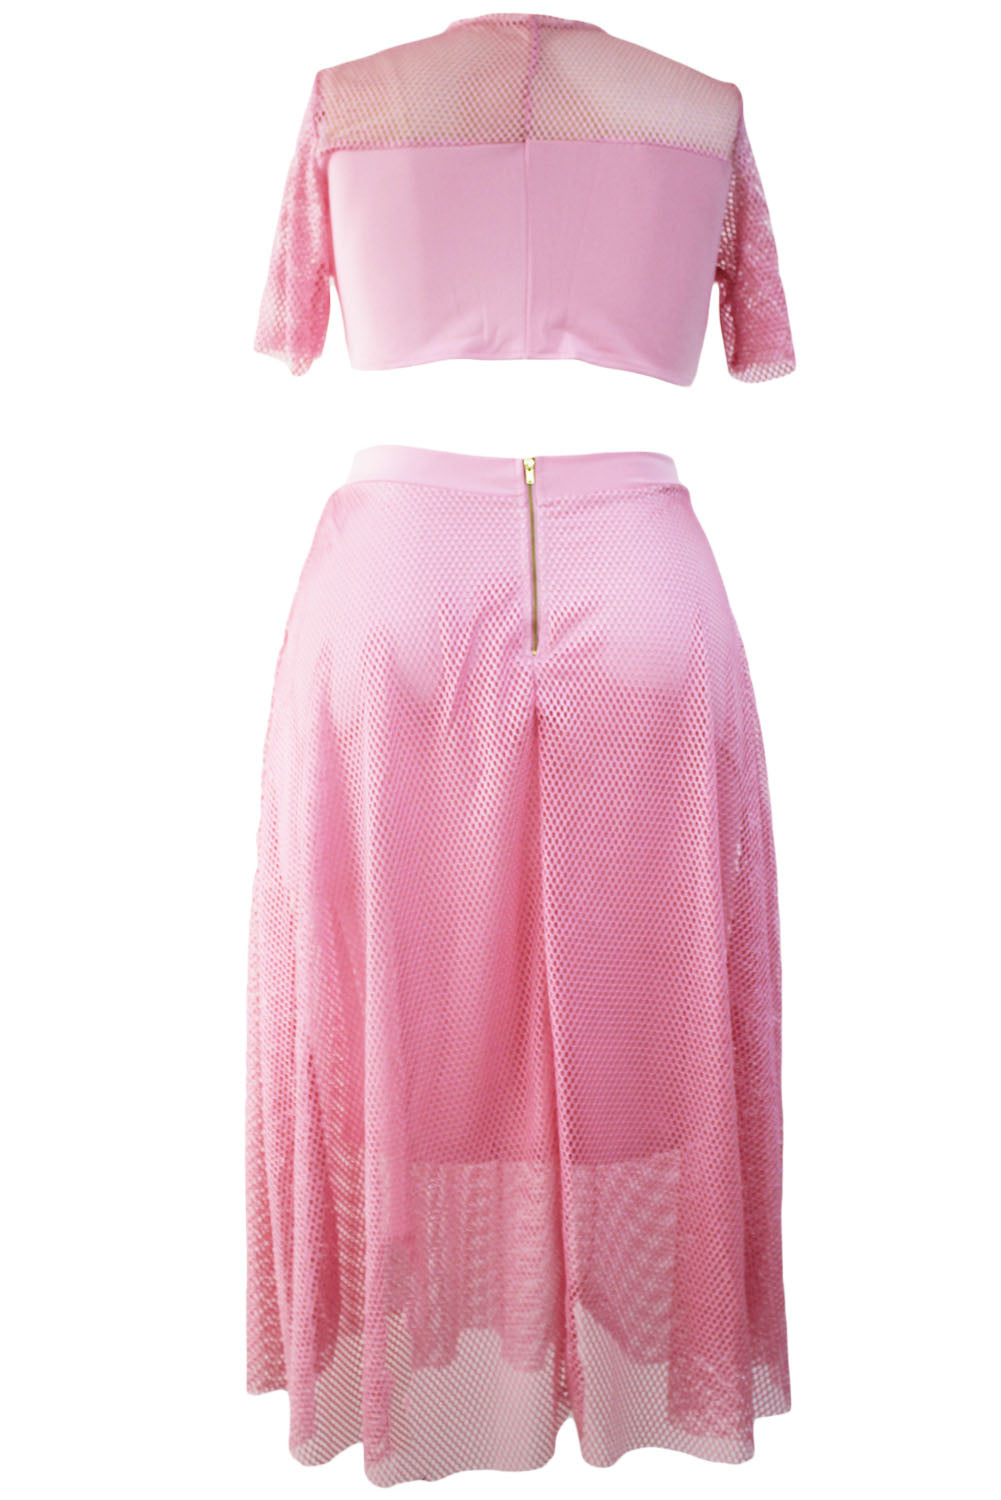 Pink Mesh Joint Plus Crop Top Skirt Set